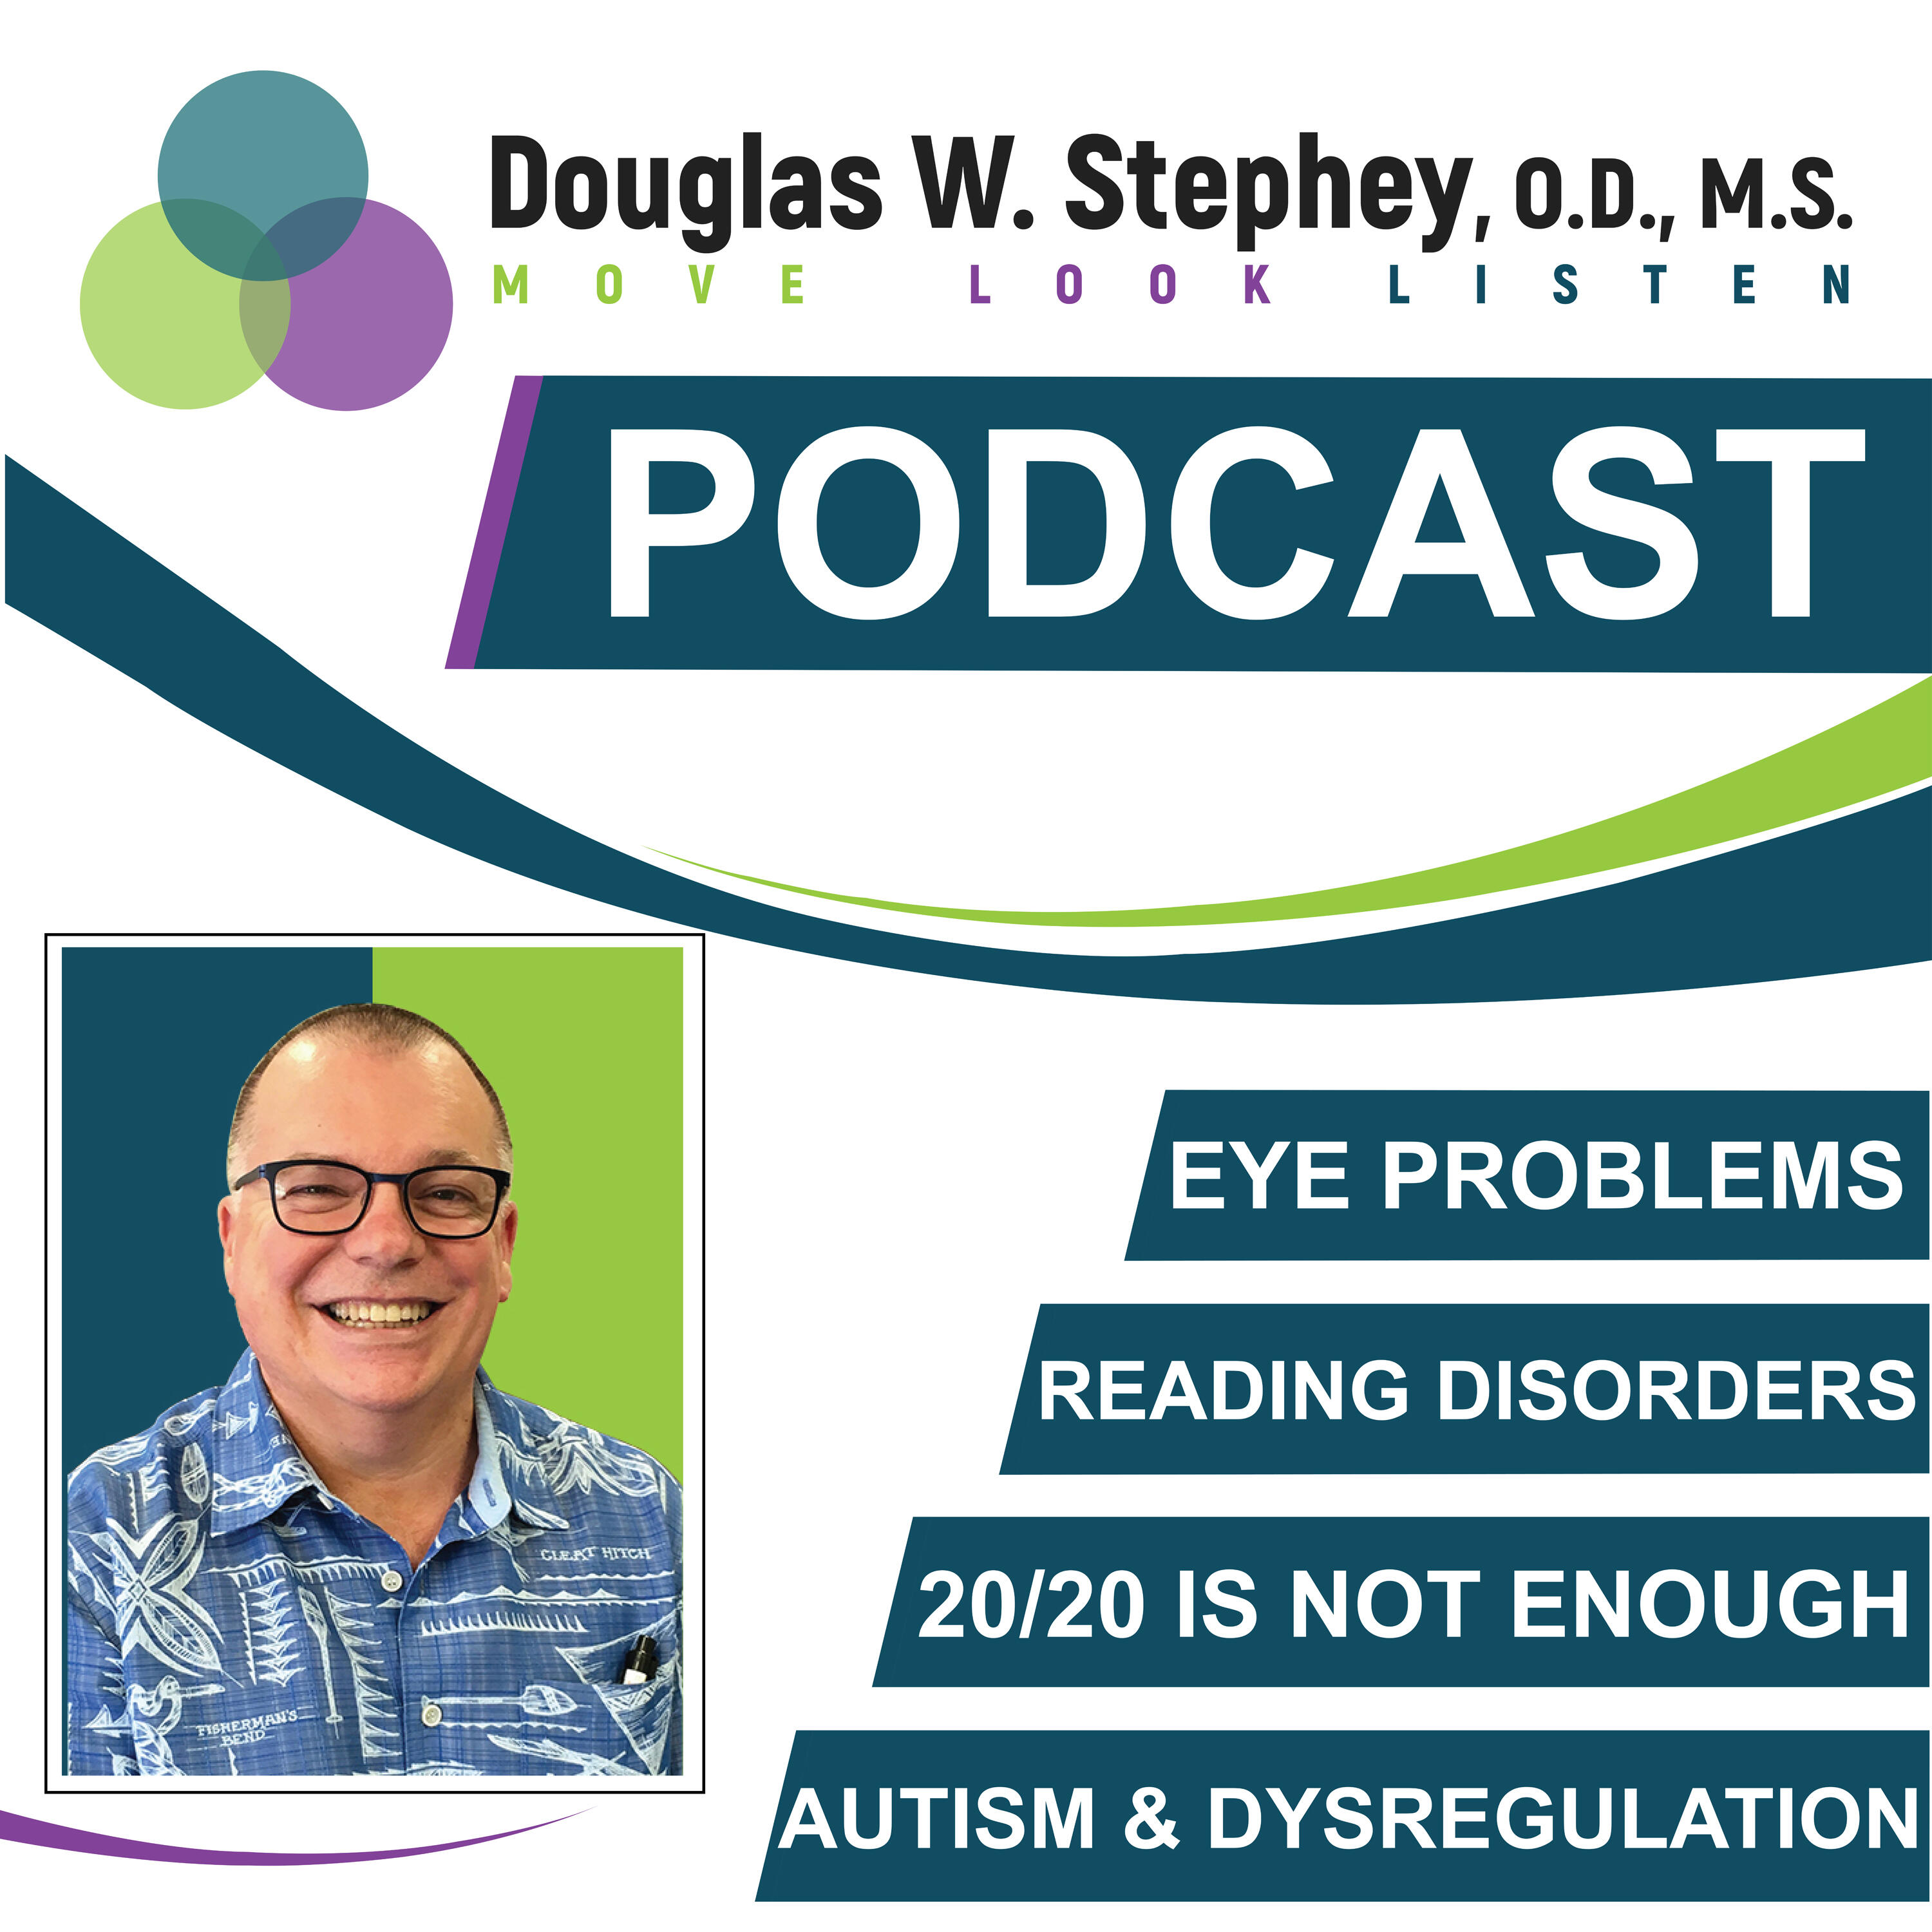 Move Look & Listen Podcast with Dr. Douglas Stephey